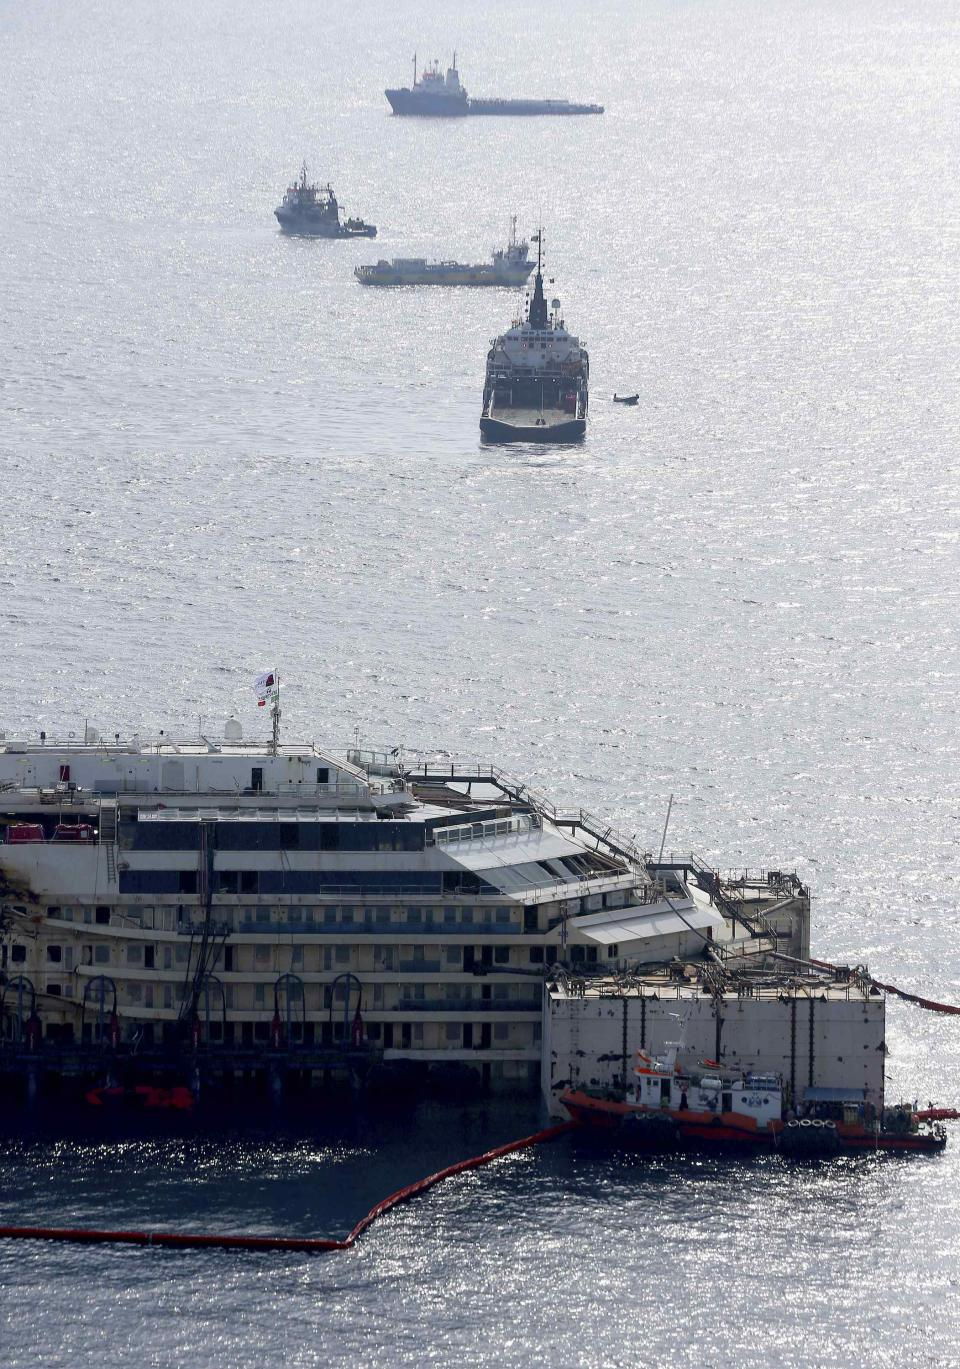 Cruise liner Costa Concordia is seen surrounded by tugboats during a refloat operation at Giglio harbour at Giglio Island July 14, 2014. Technicians on Monday began a complex operation to refloat and tow away the wreck of the Costa Concordia, two and a half years after the luxury liner capsized off the Italian coast, killing 32 people. REUTERS/Alessandro Bianchi (ITALY - Tags: DISASTER TRANSPORT MARITIME)